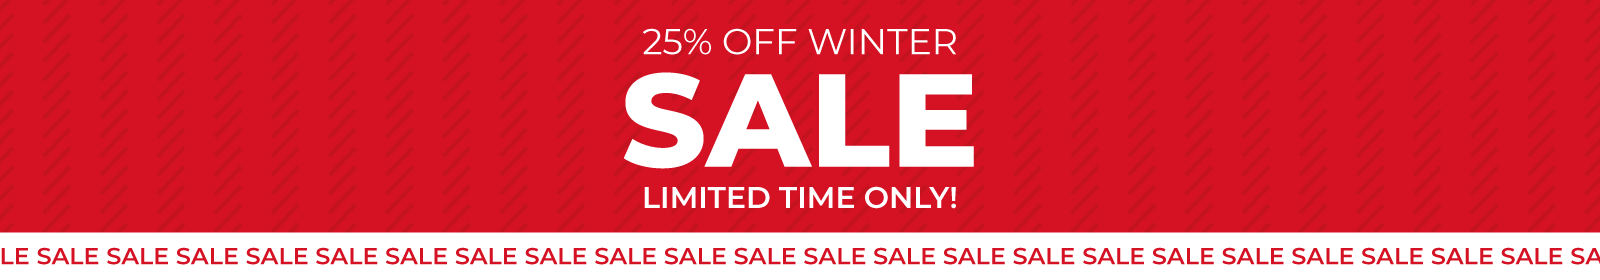 Winter sale now on - 25% off all bathrooms instore now!